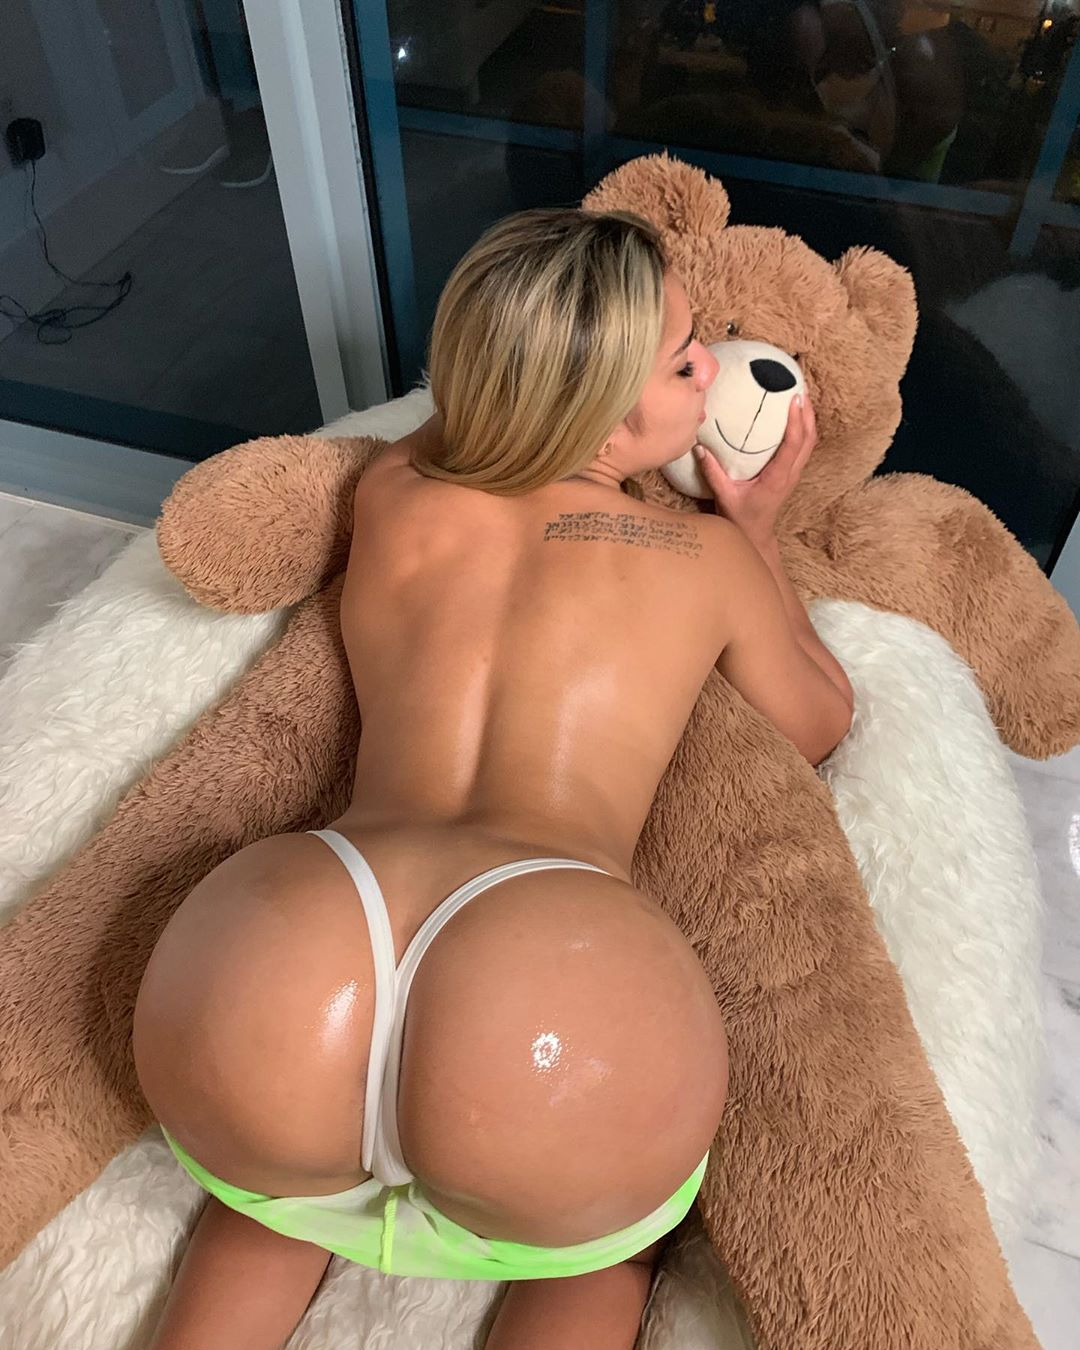 Thechantal Nude The Chantal Mia Onlyfans Leaked! 0026